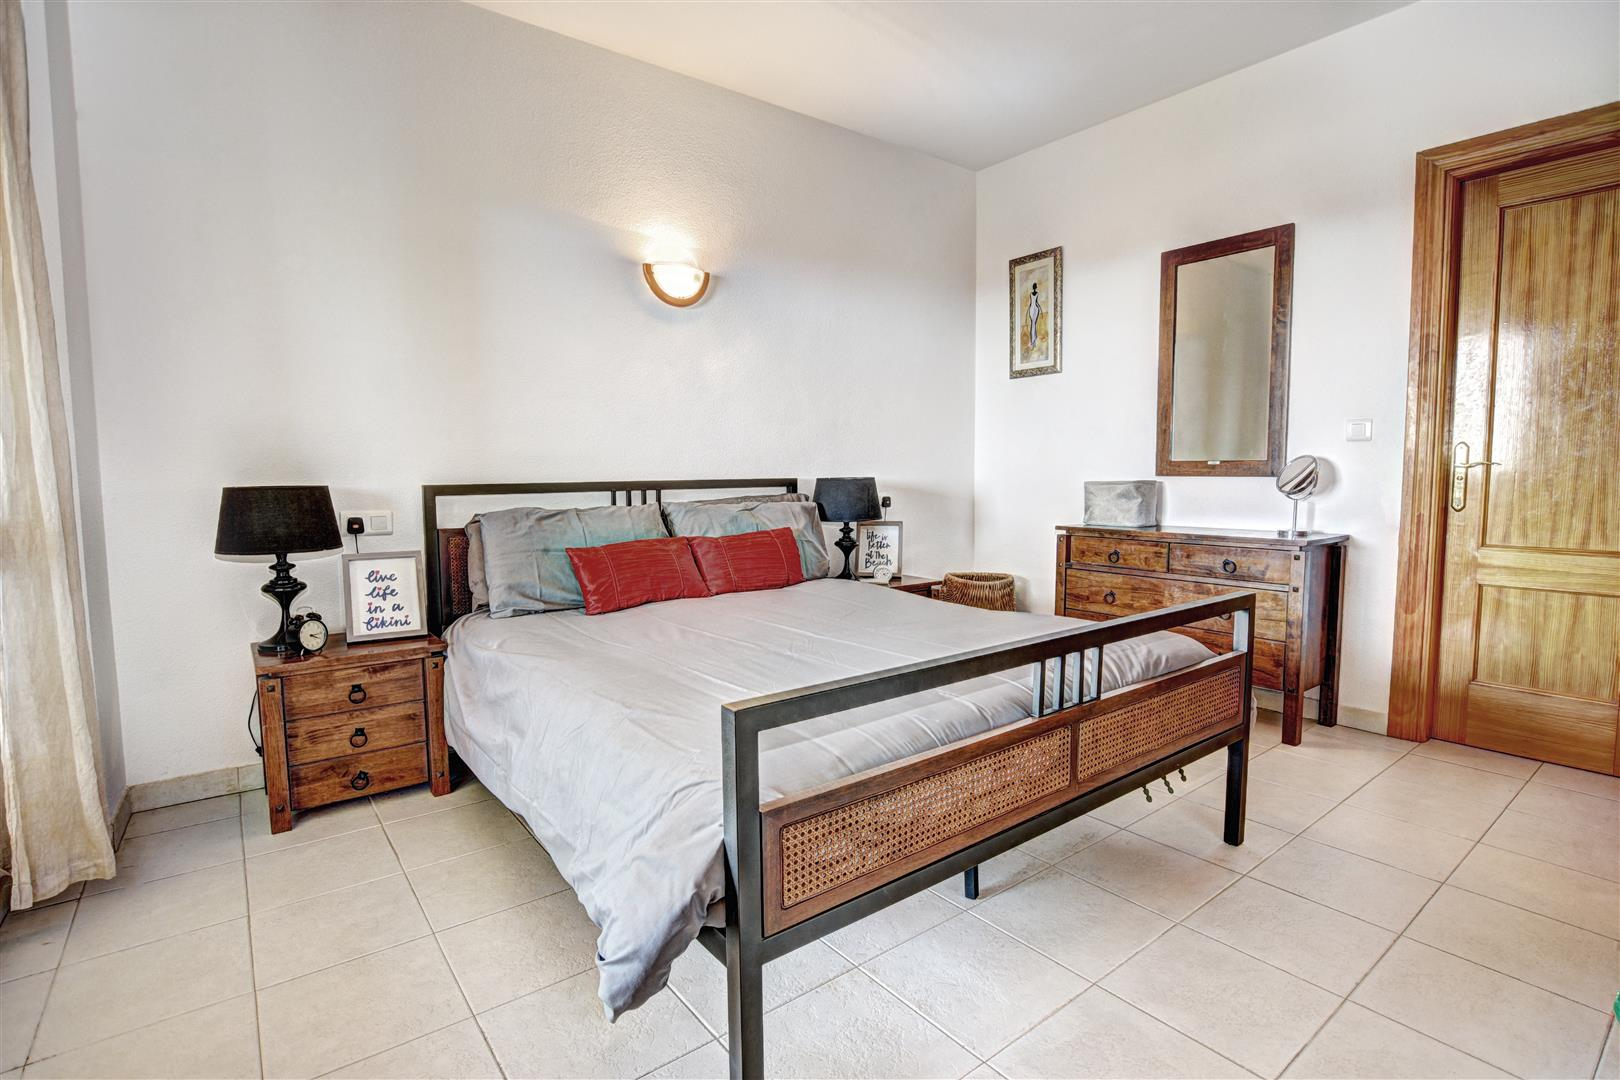 2 Bed Apartment for sale in Reserva del Higueron 018_19_20_21_22_23 (Large)